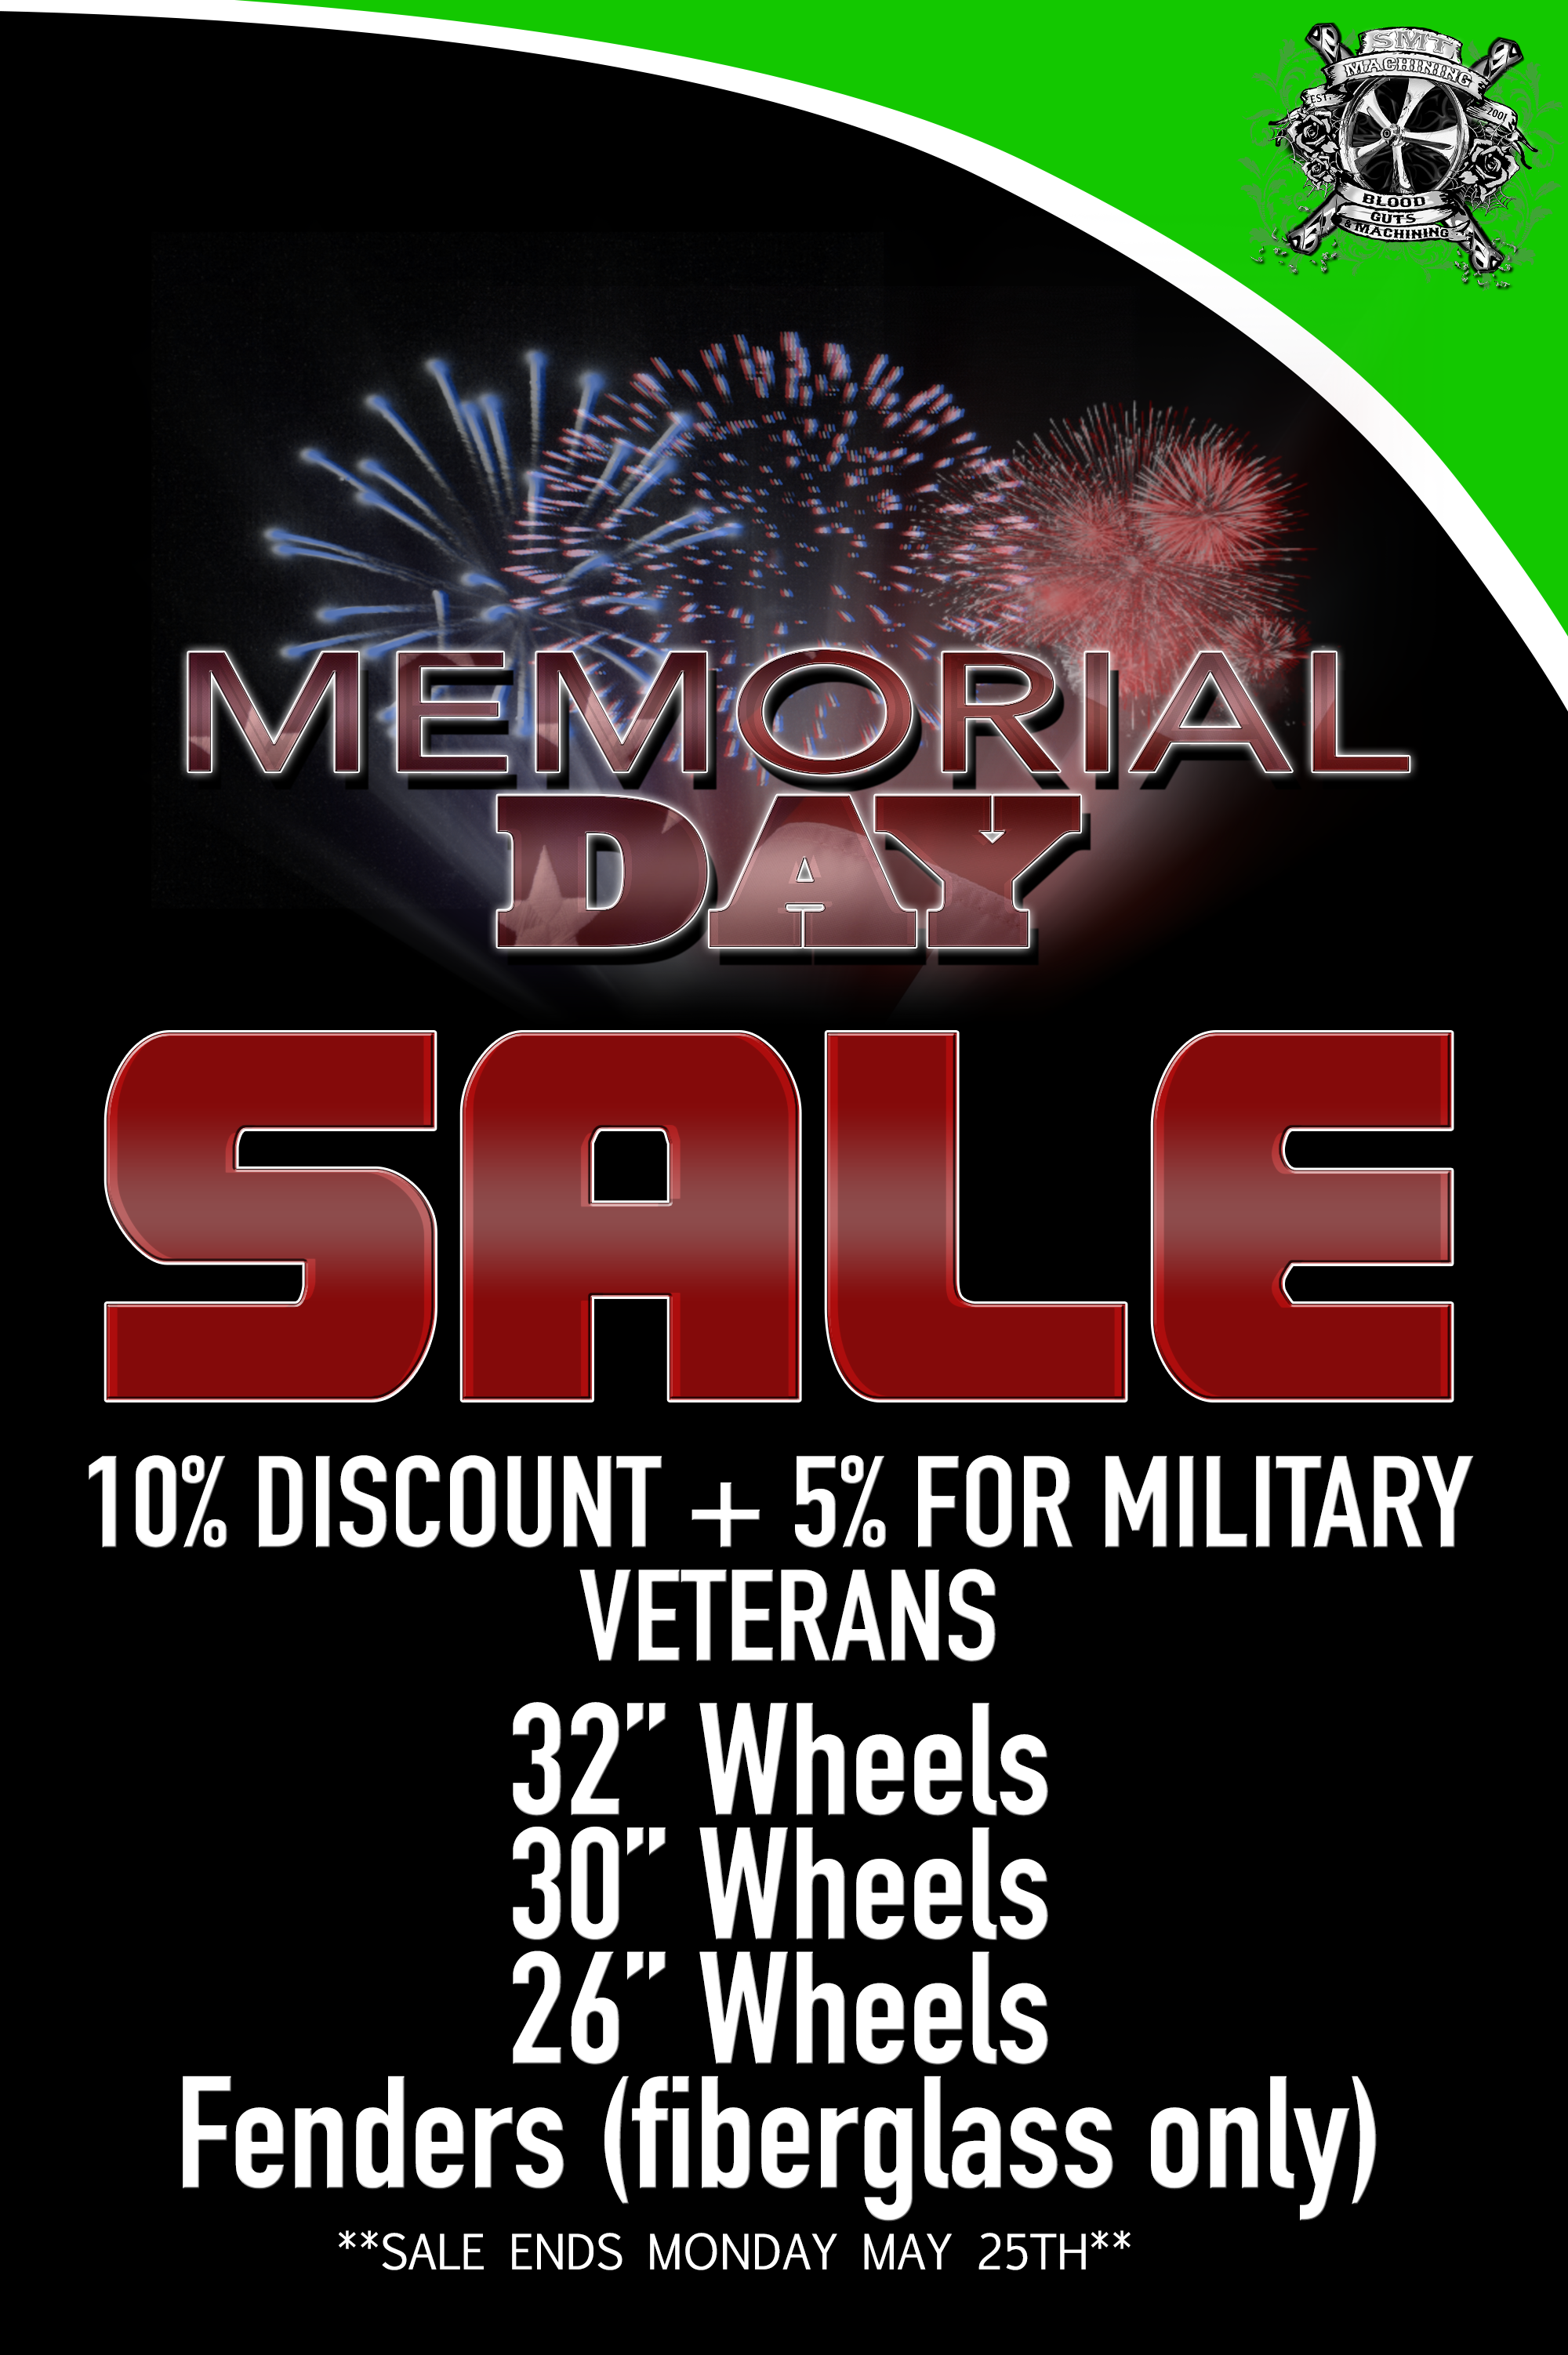 new memorial day sale!!! 10% discount + 5% for military veterans